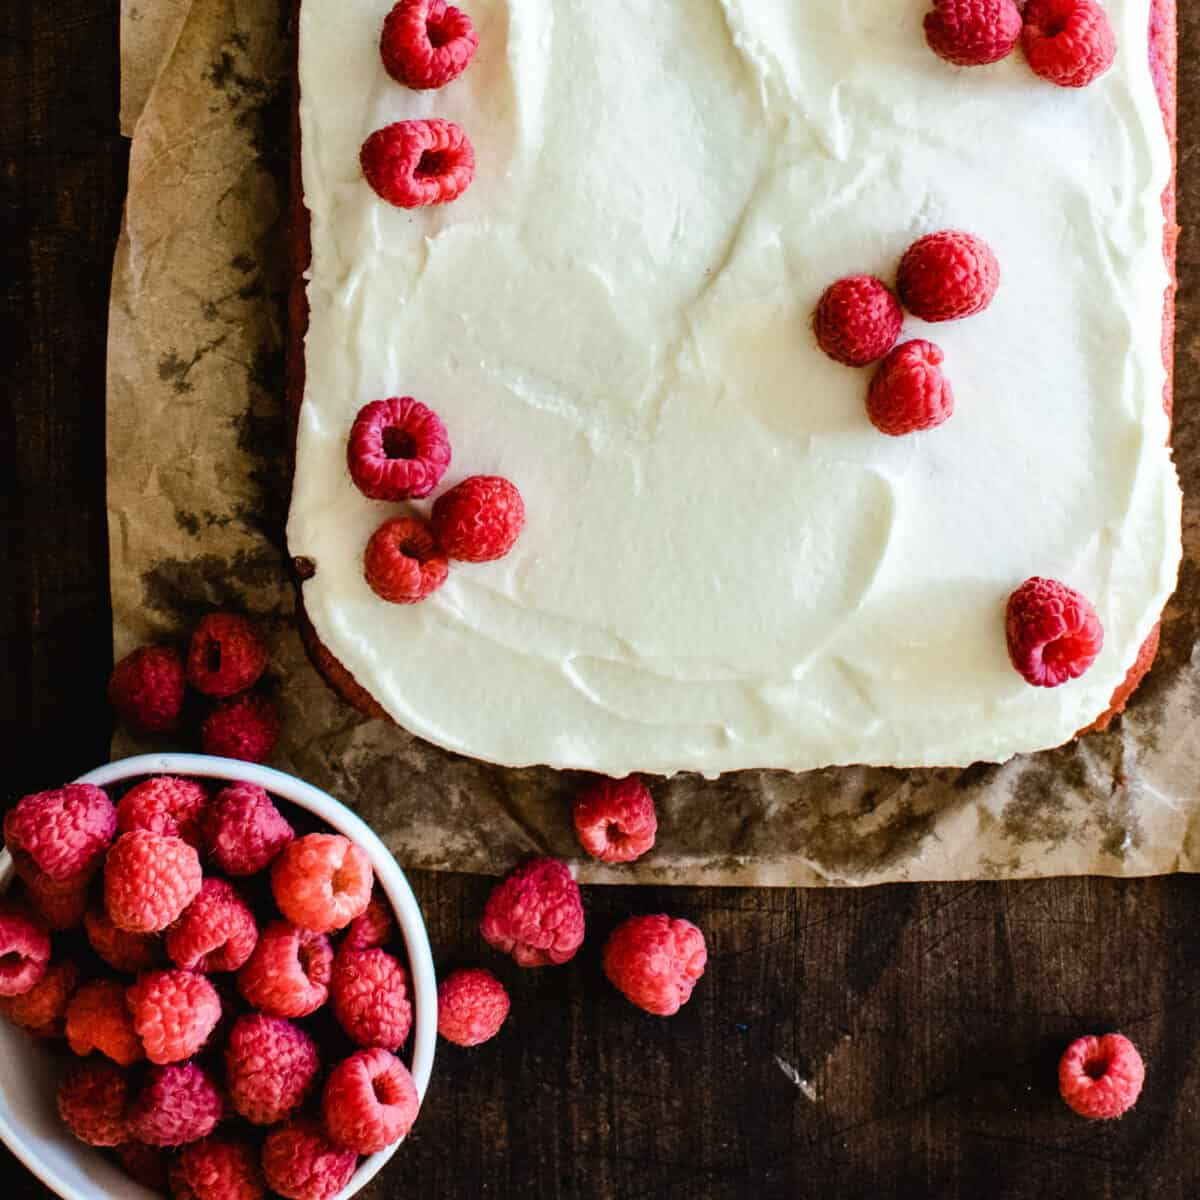 raspberry sheet cake on brown parchment paper with white frosting and bowl of fresh raspberries to decorate the top